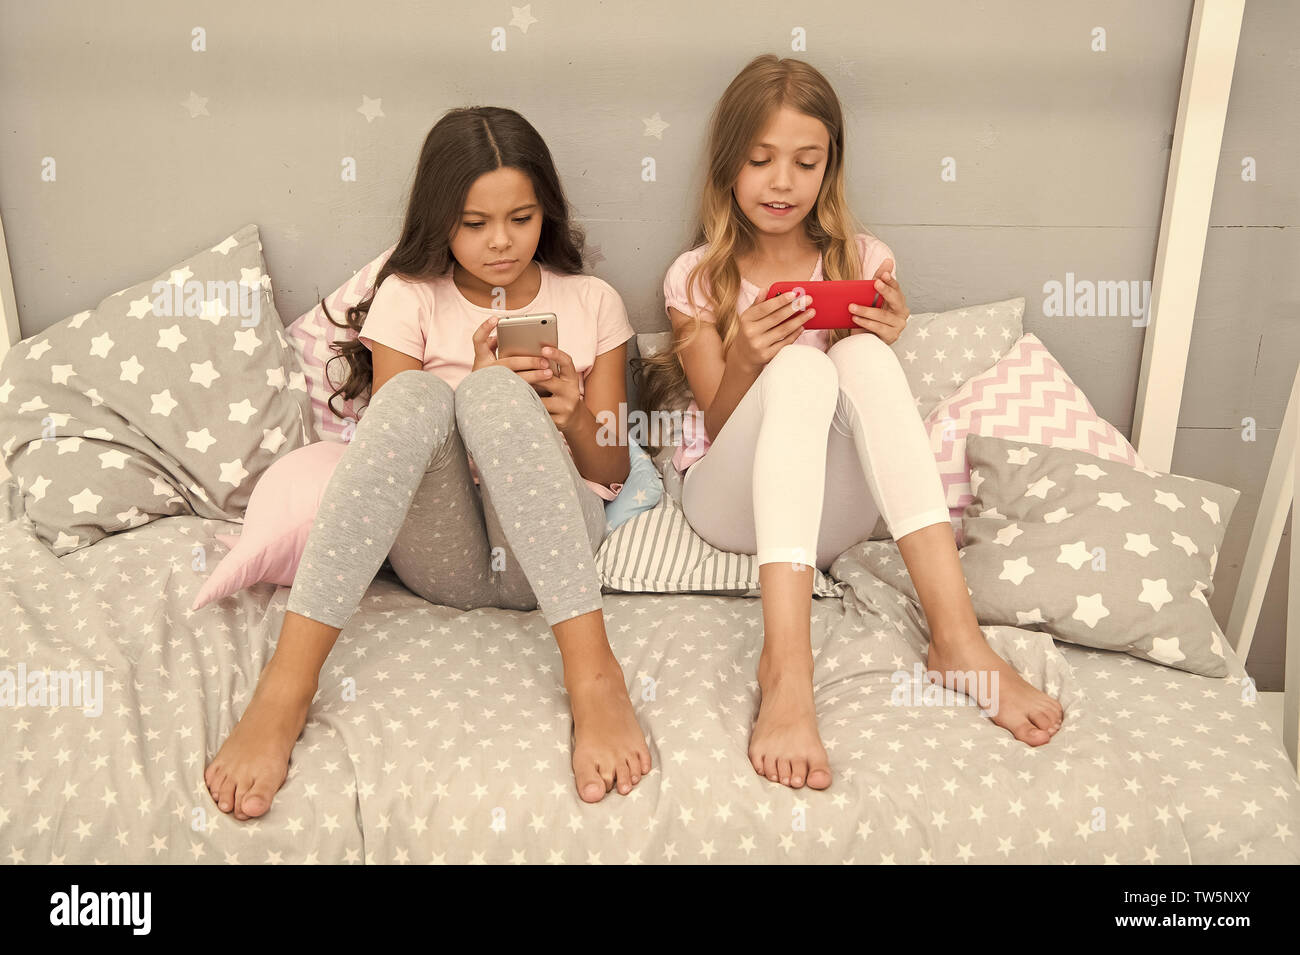 Smartphone for entertainment. Kids taking selfie. Smartphone application concept. Girlish leisure pajama party. Girls smartphone little bloggers. Onli - Stock Image